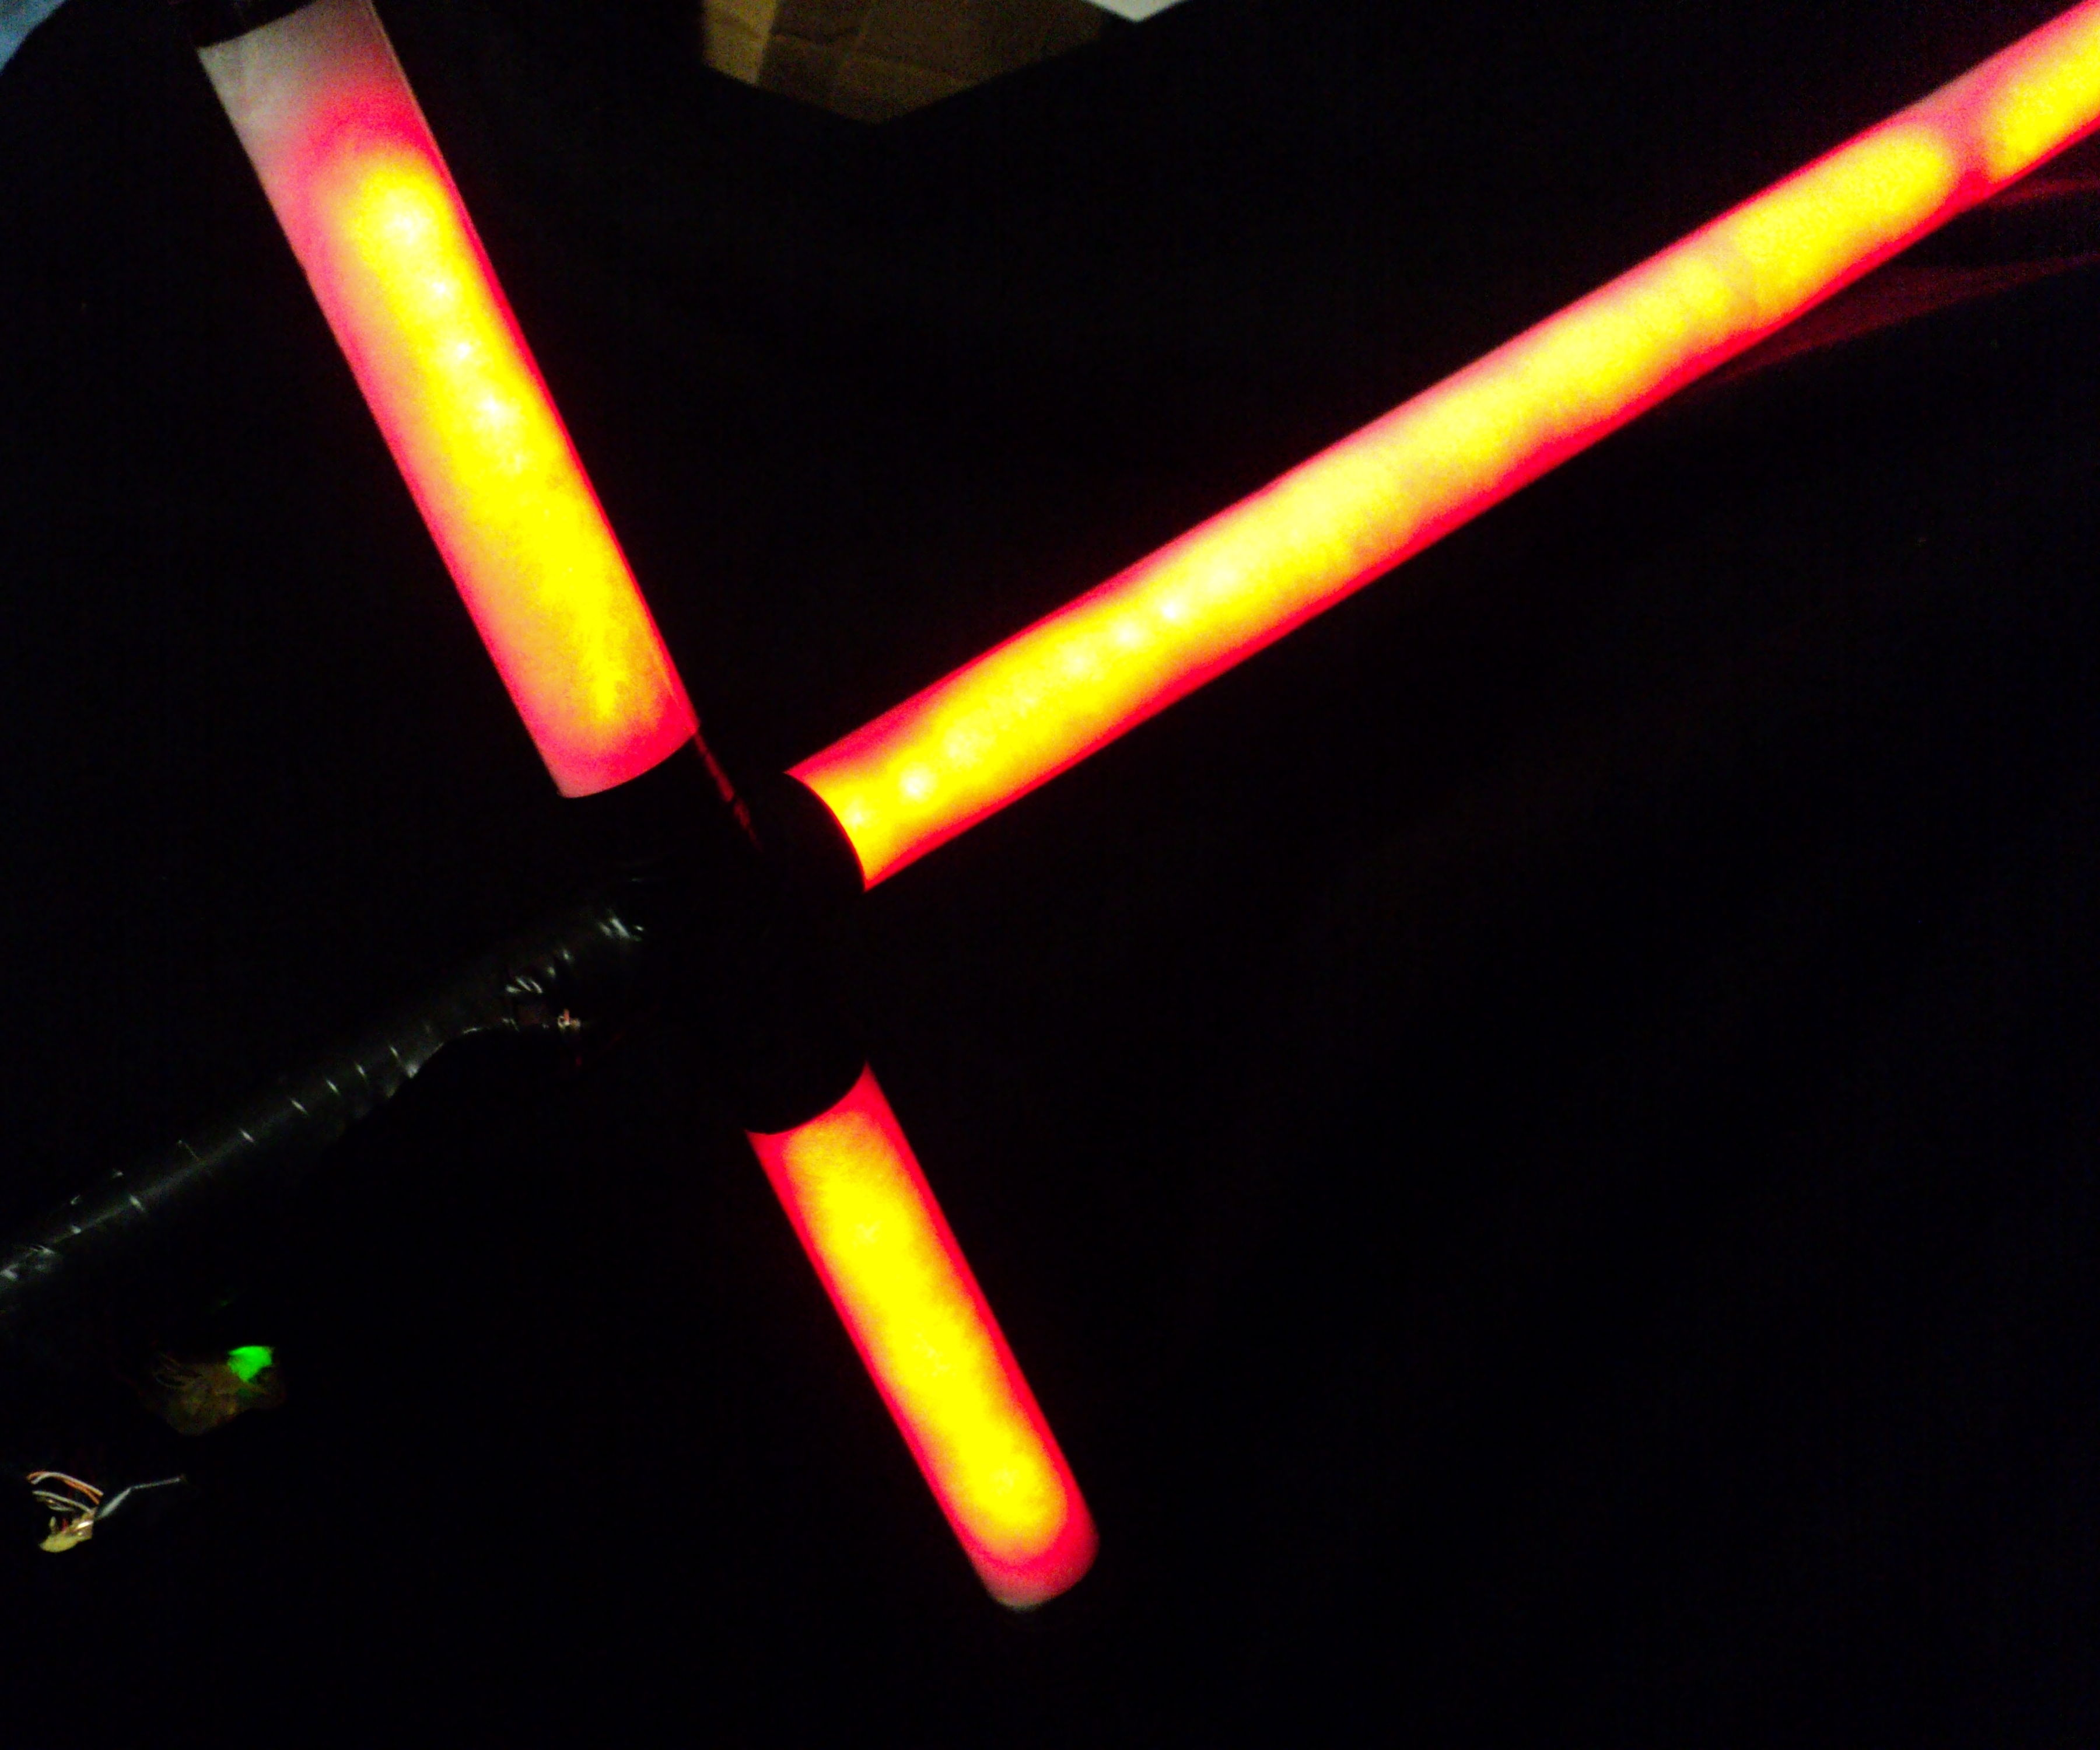 Star Wars Crossguard Neopixel Lightsaber: 5 Steps (with Pictures)